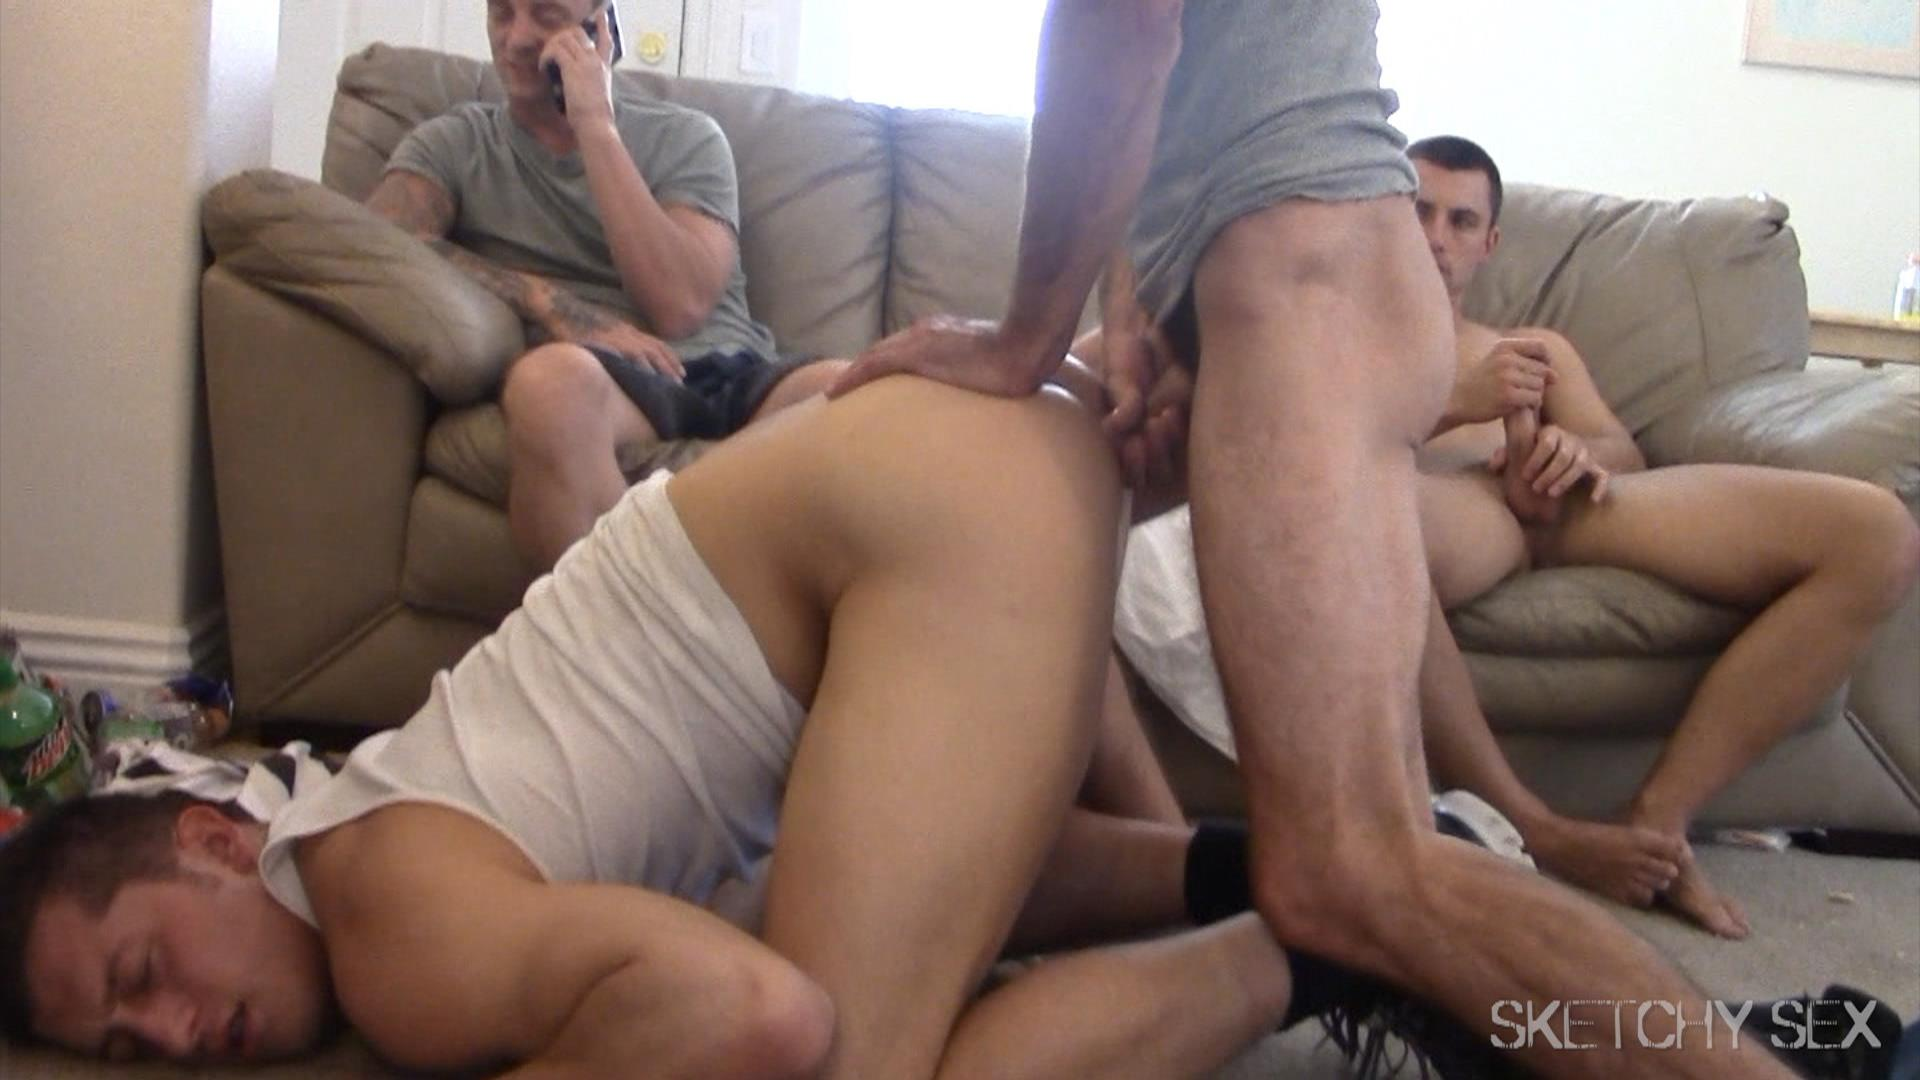 Sketchy Sex Anonymous Bareback Sex Party Amateur Gay Porn 10